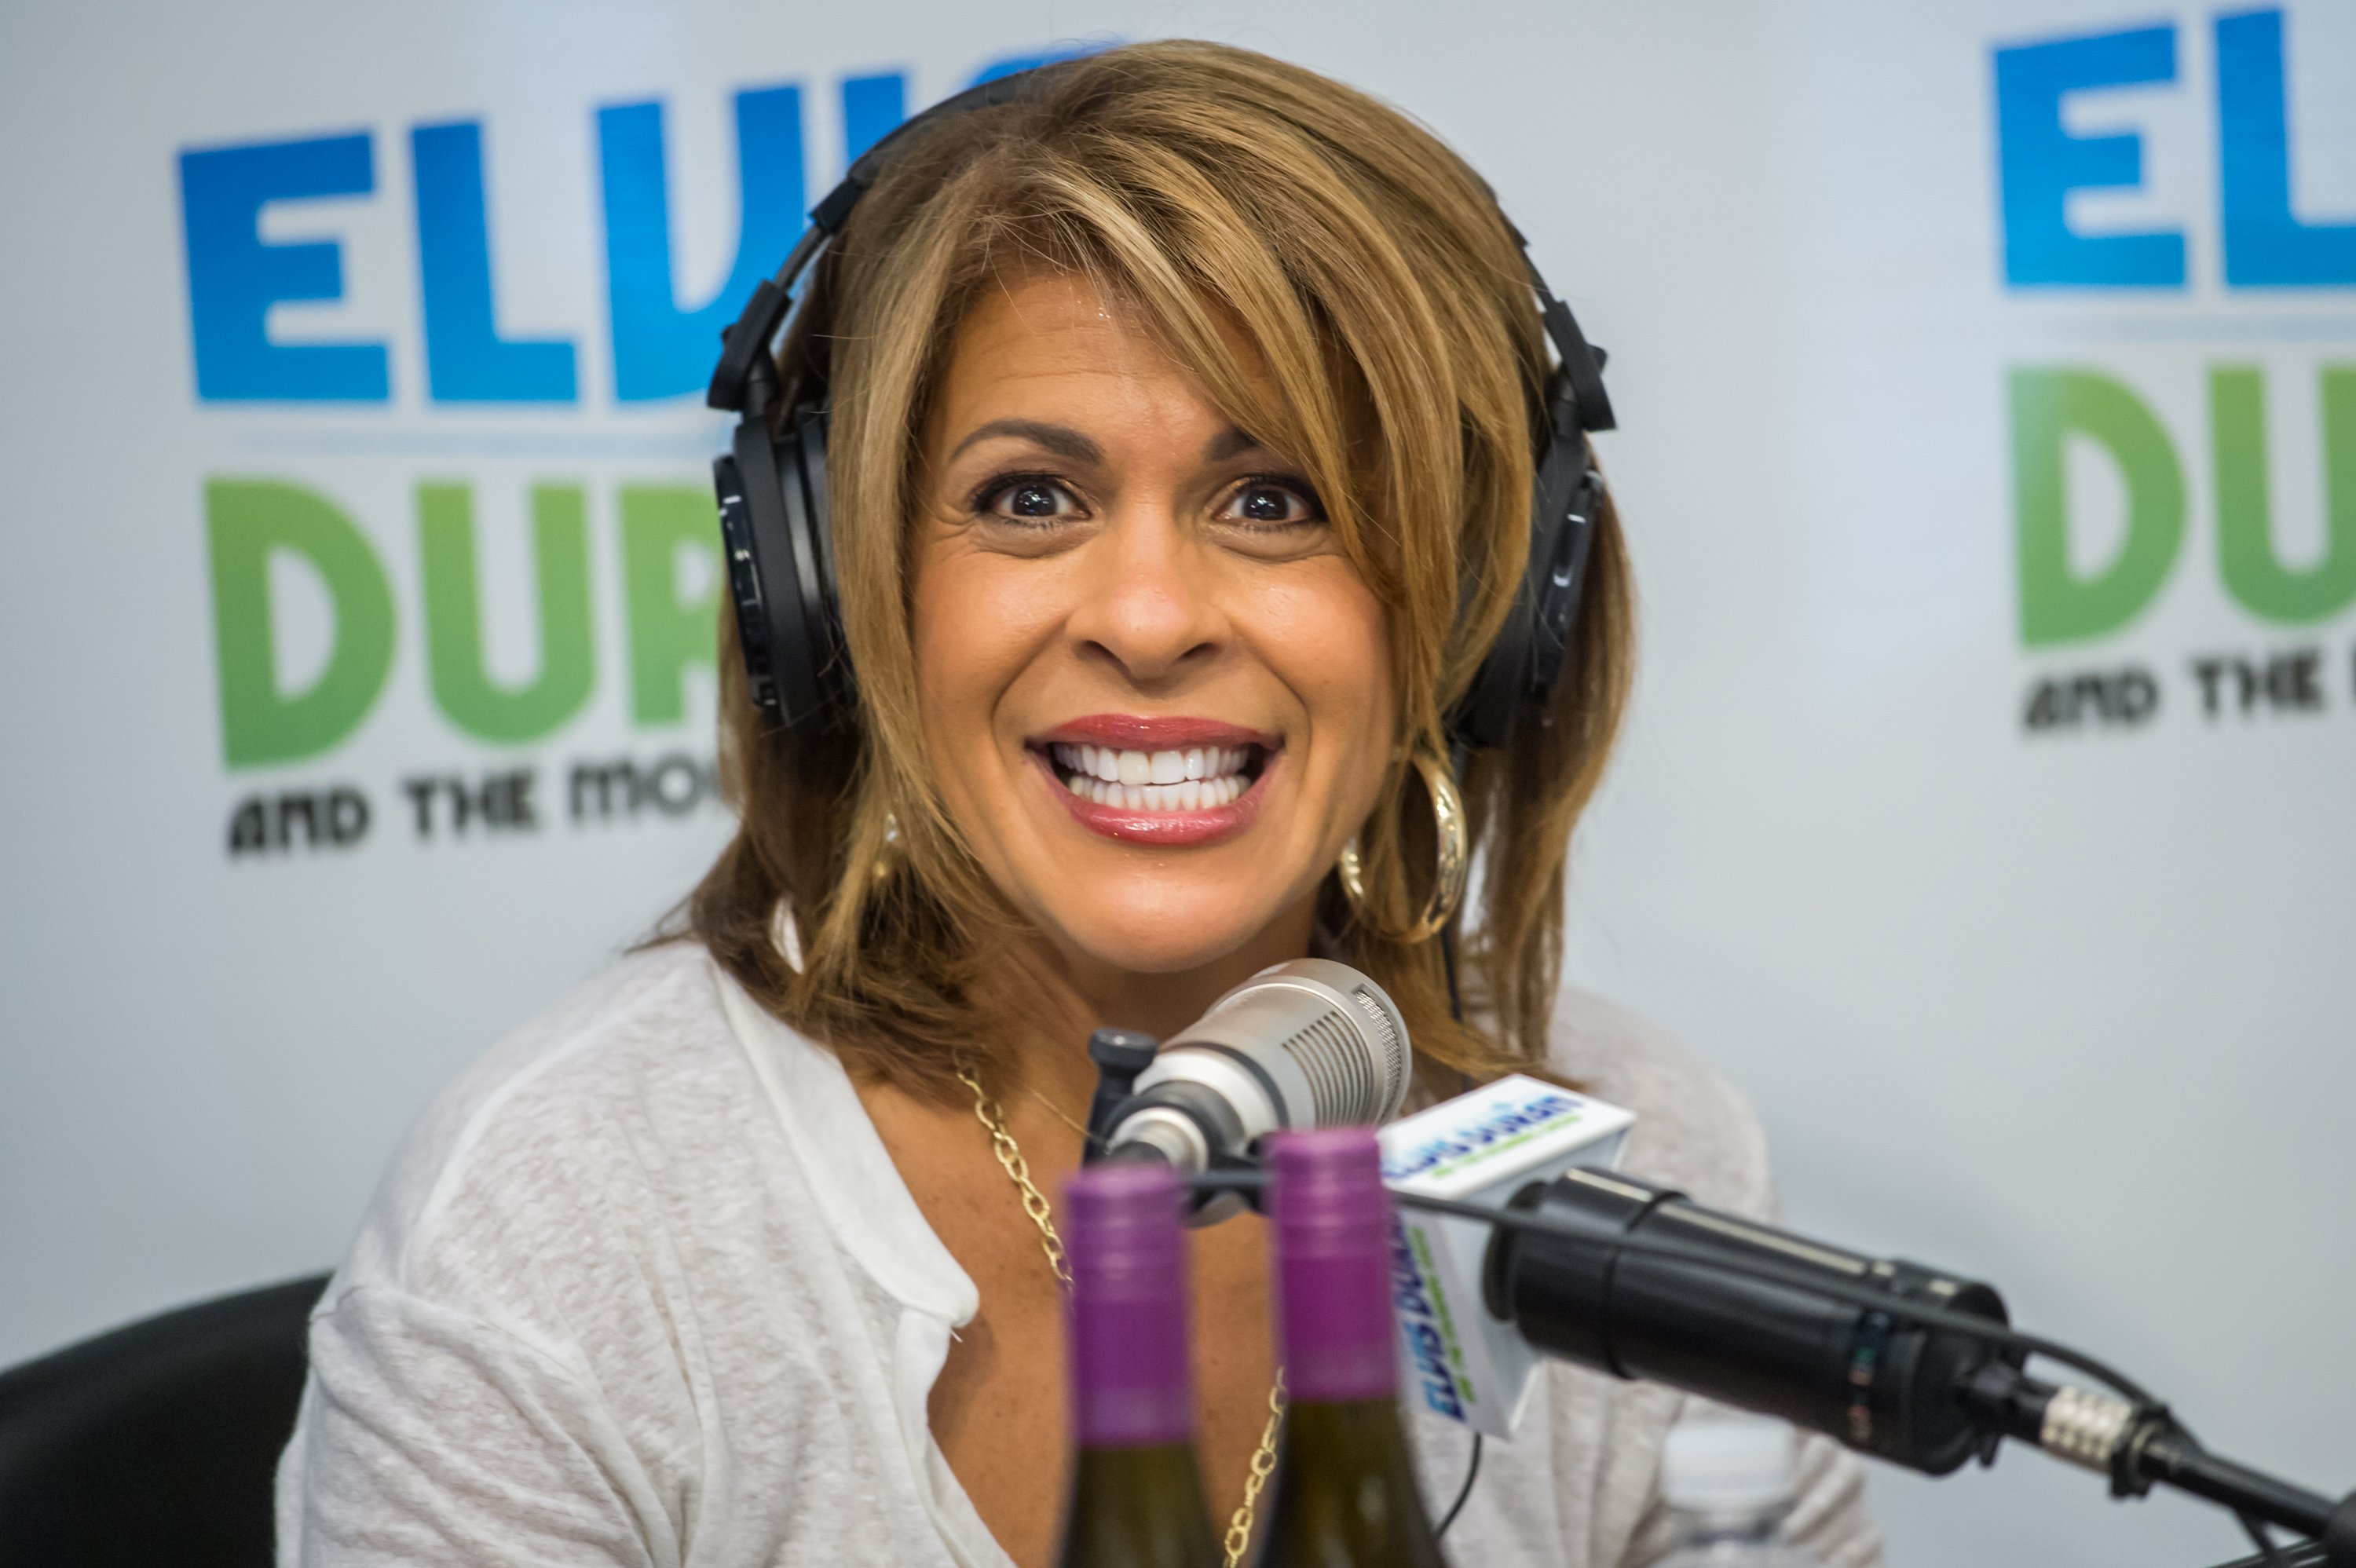 Hoda Kotb during her 2015 radio guesting at the Z100 Studio in New York City. | Photo: Getty Images